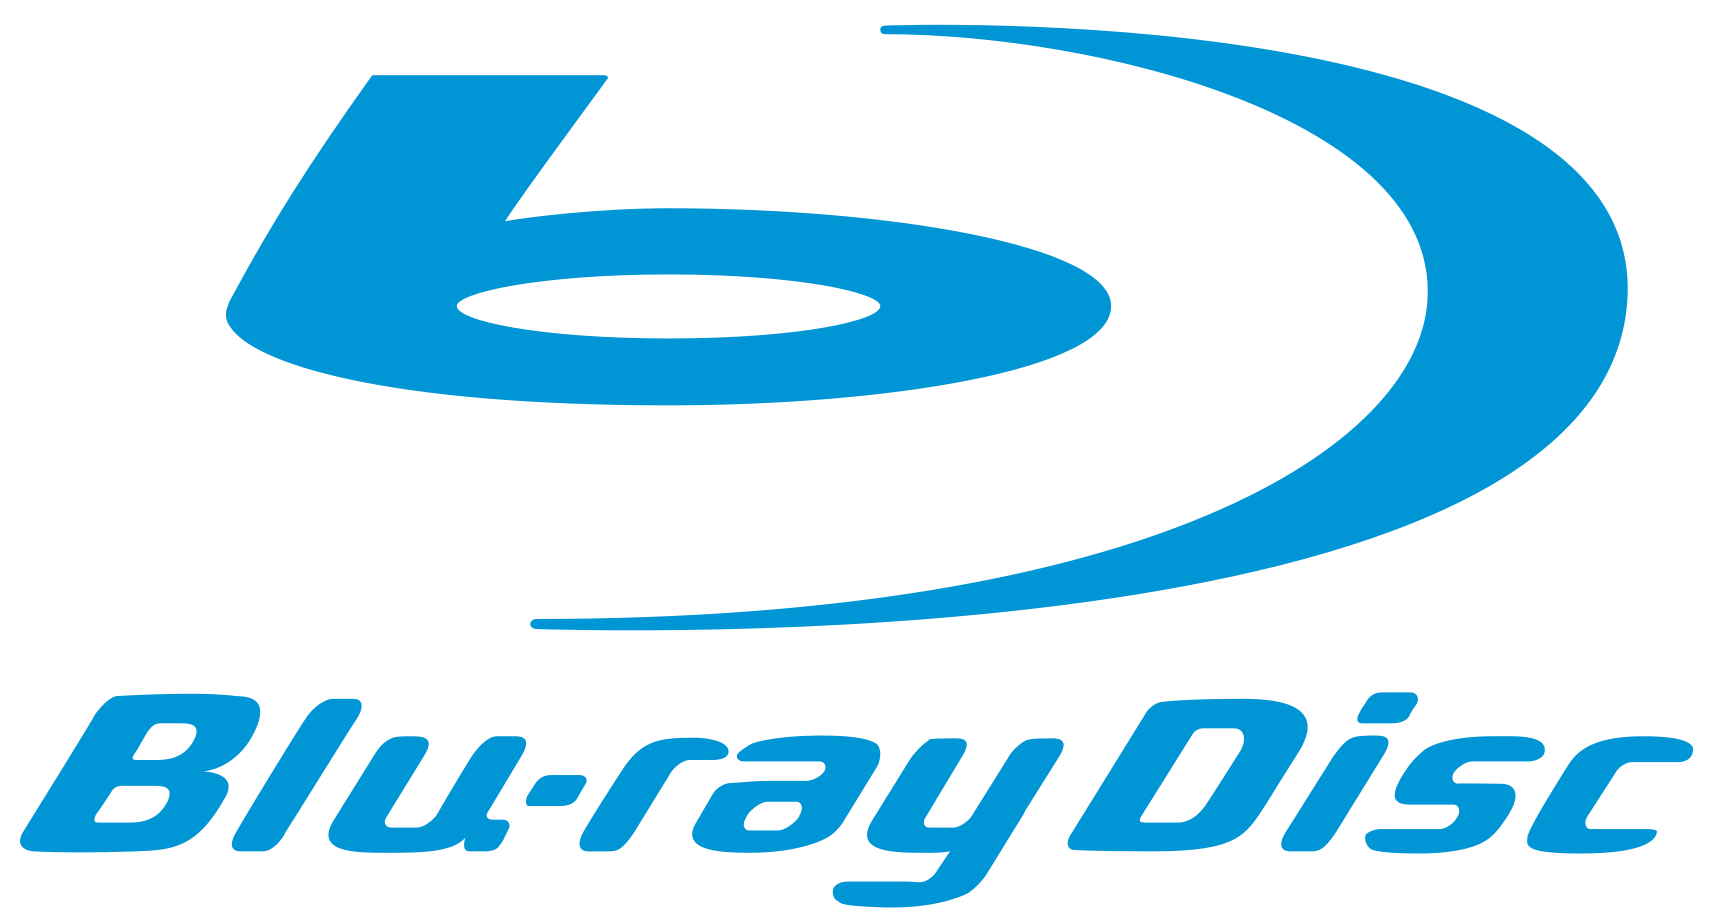 15 Blu-ray Logo.png Icon Images